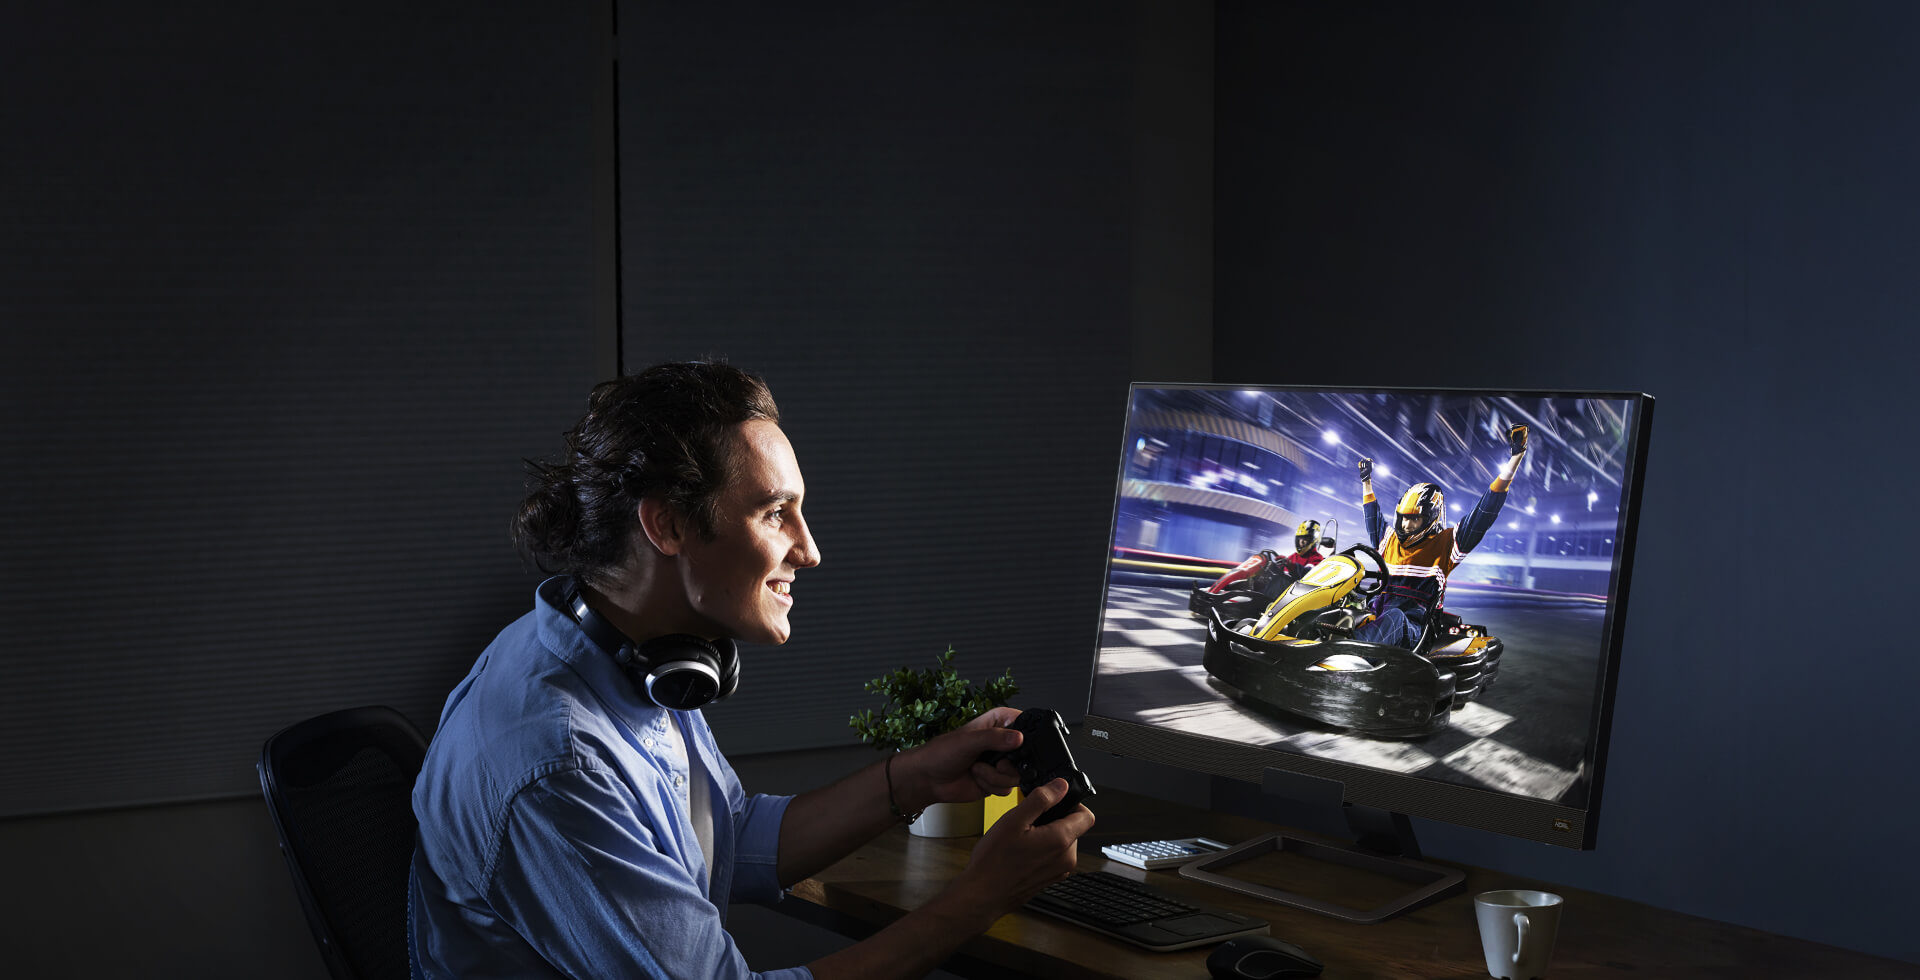 a man is playing a racing game